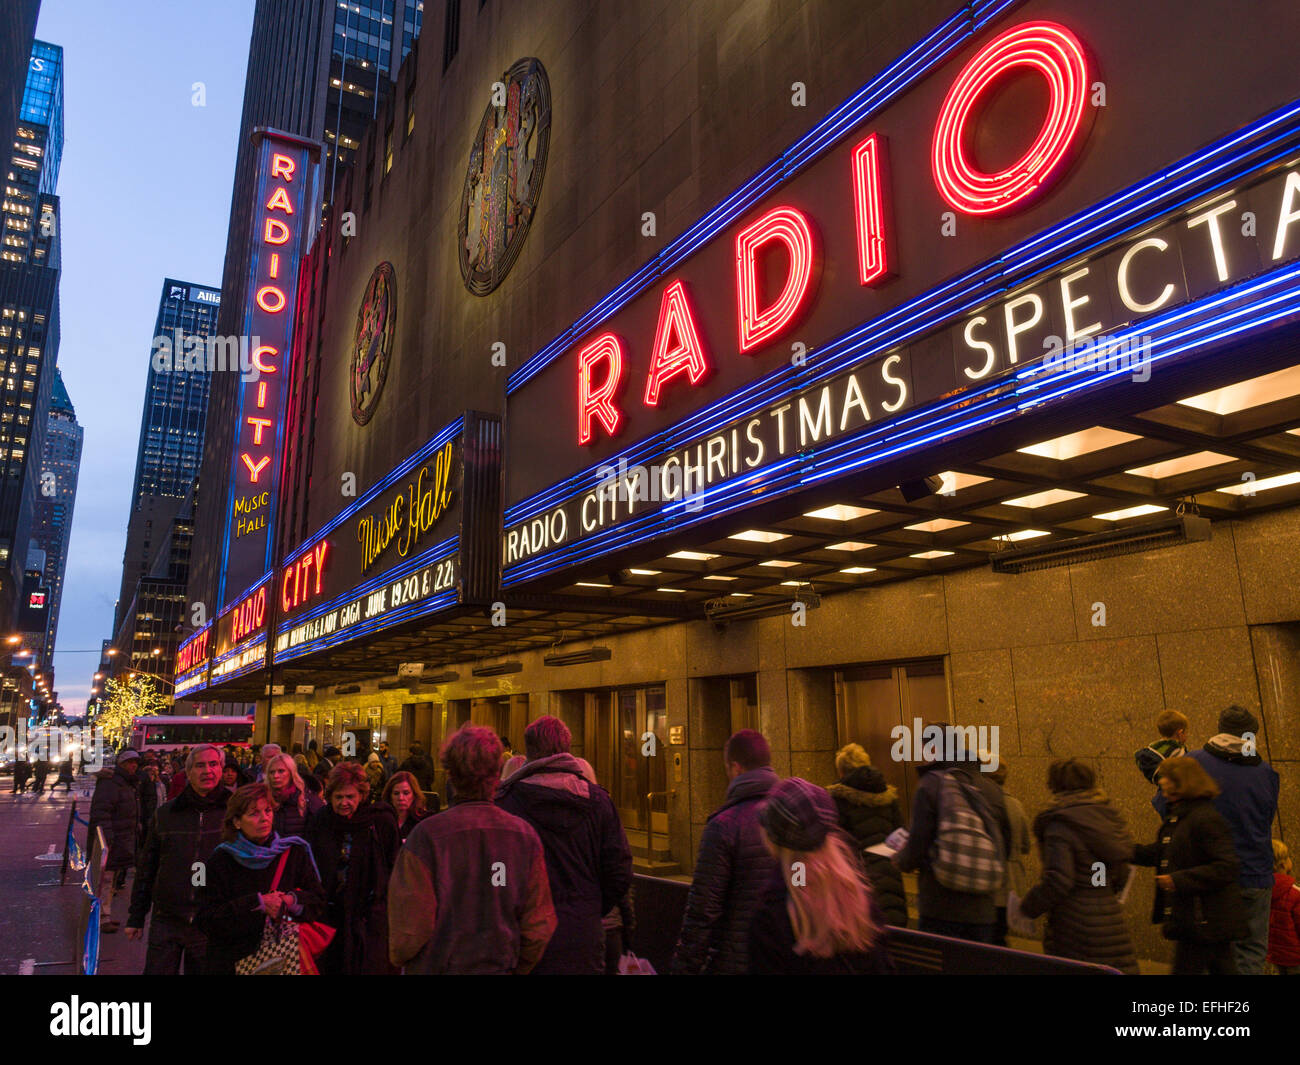 Lining up for Radio City Music Hall Christmas Spectacular. Radio ...